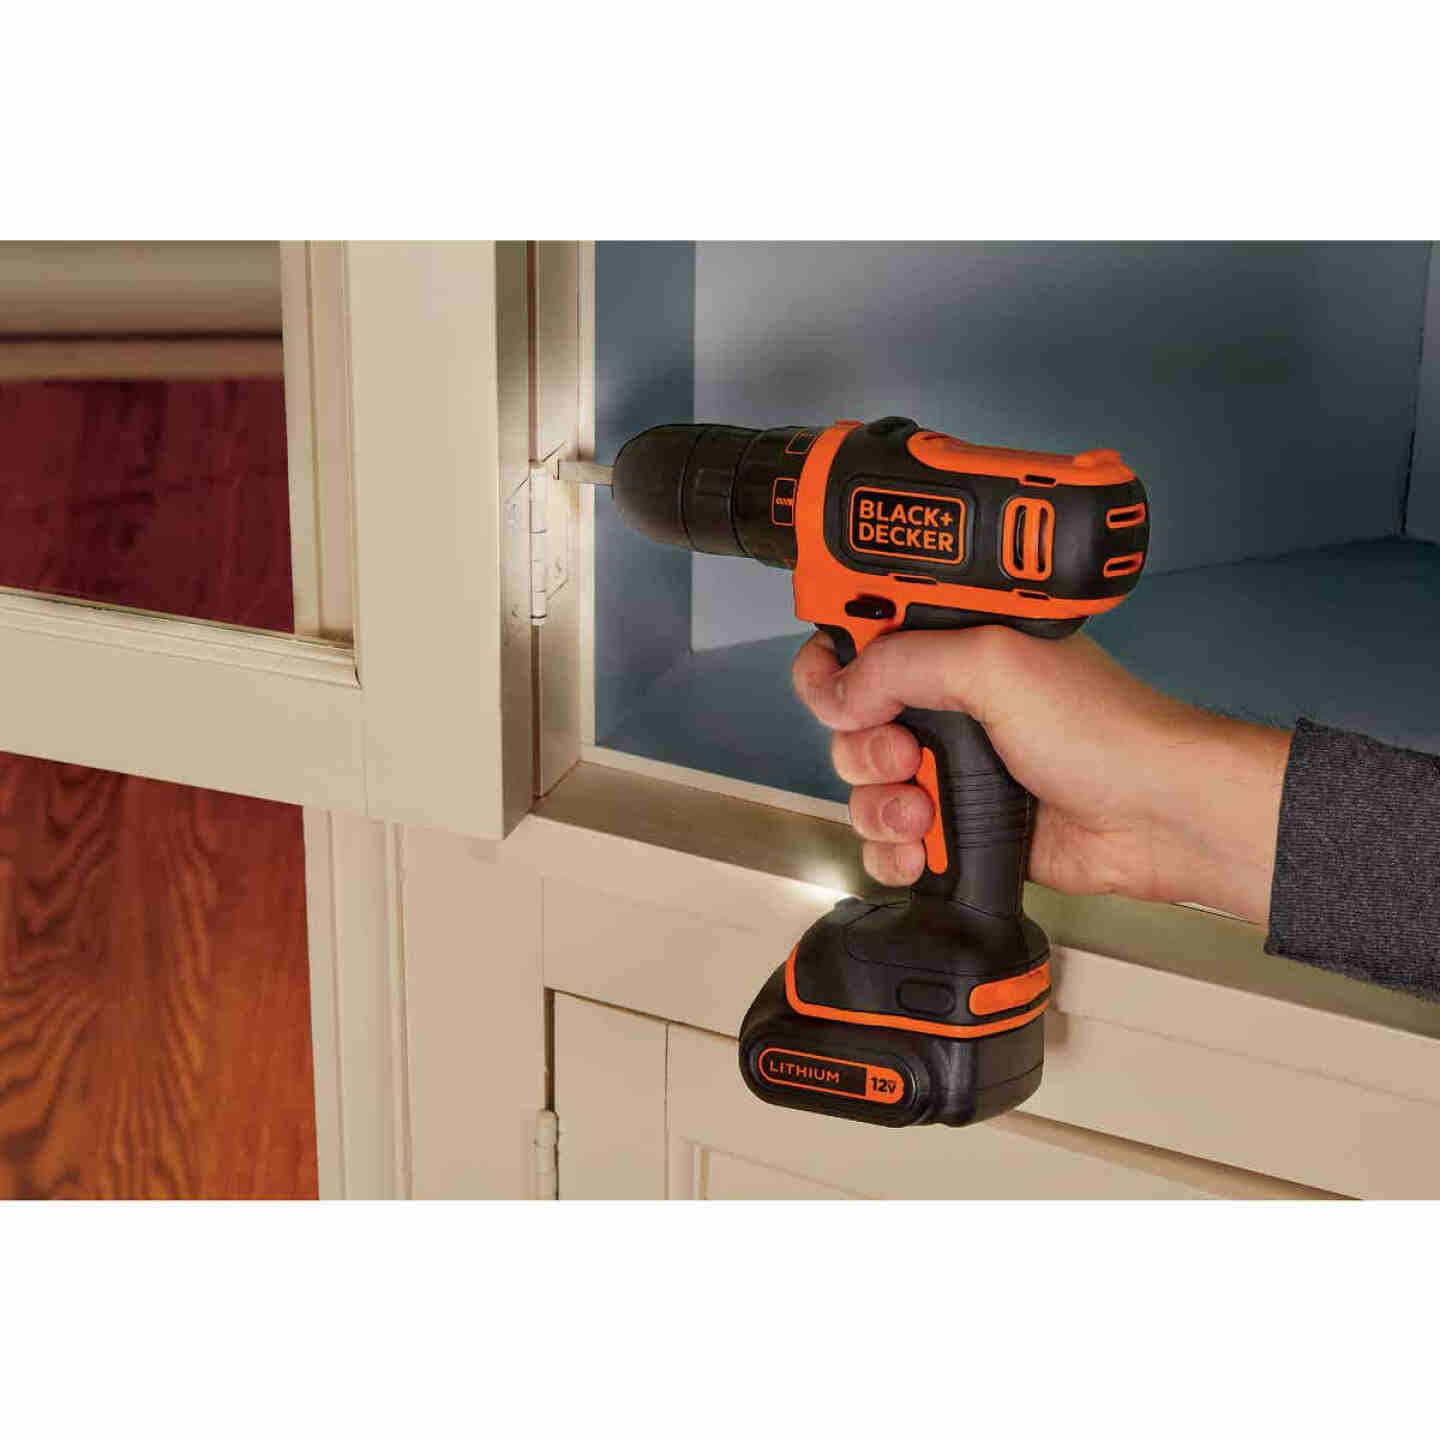 Black & Decker 12 Volt MAX Lithium-Ion 3/8 In. Cordless Drill Kit Image 2